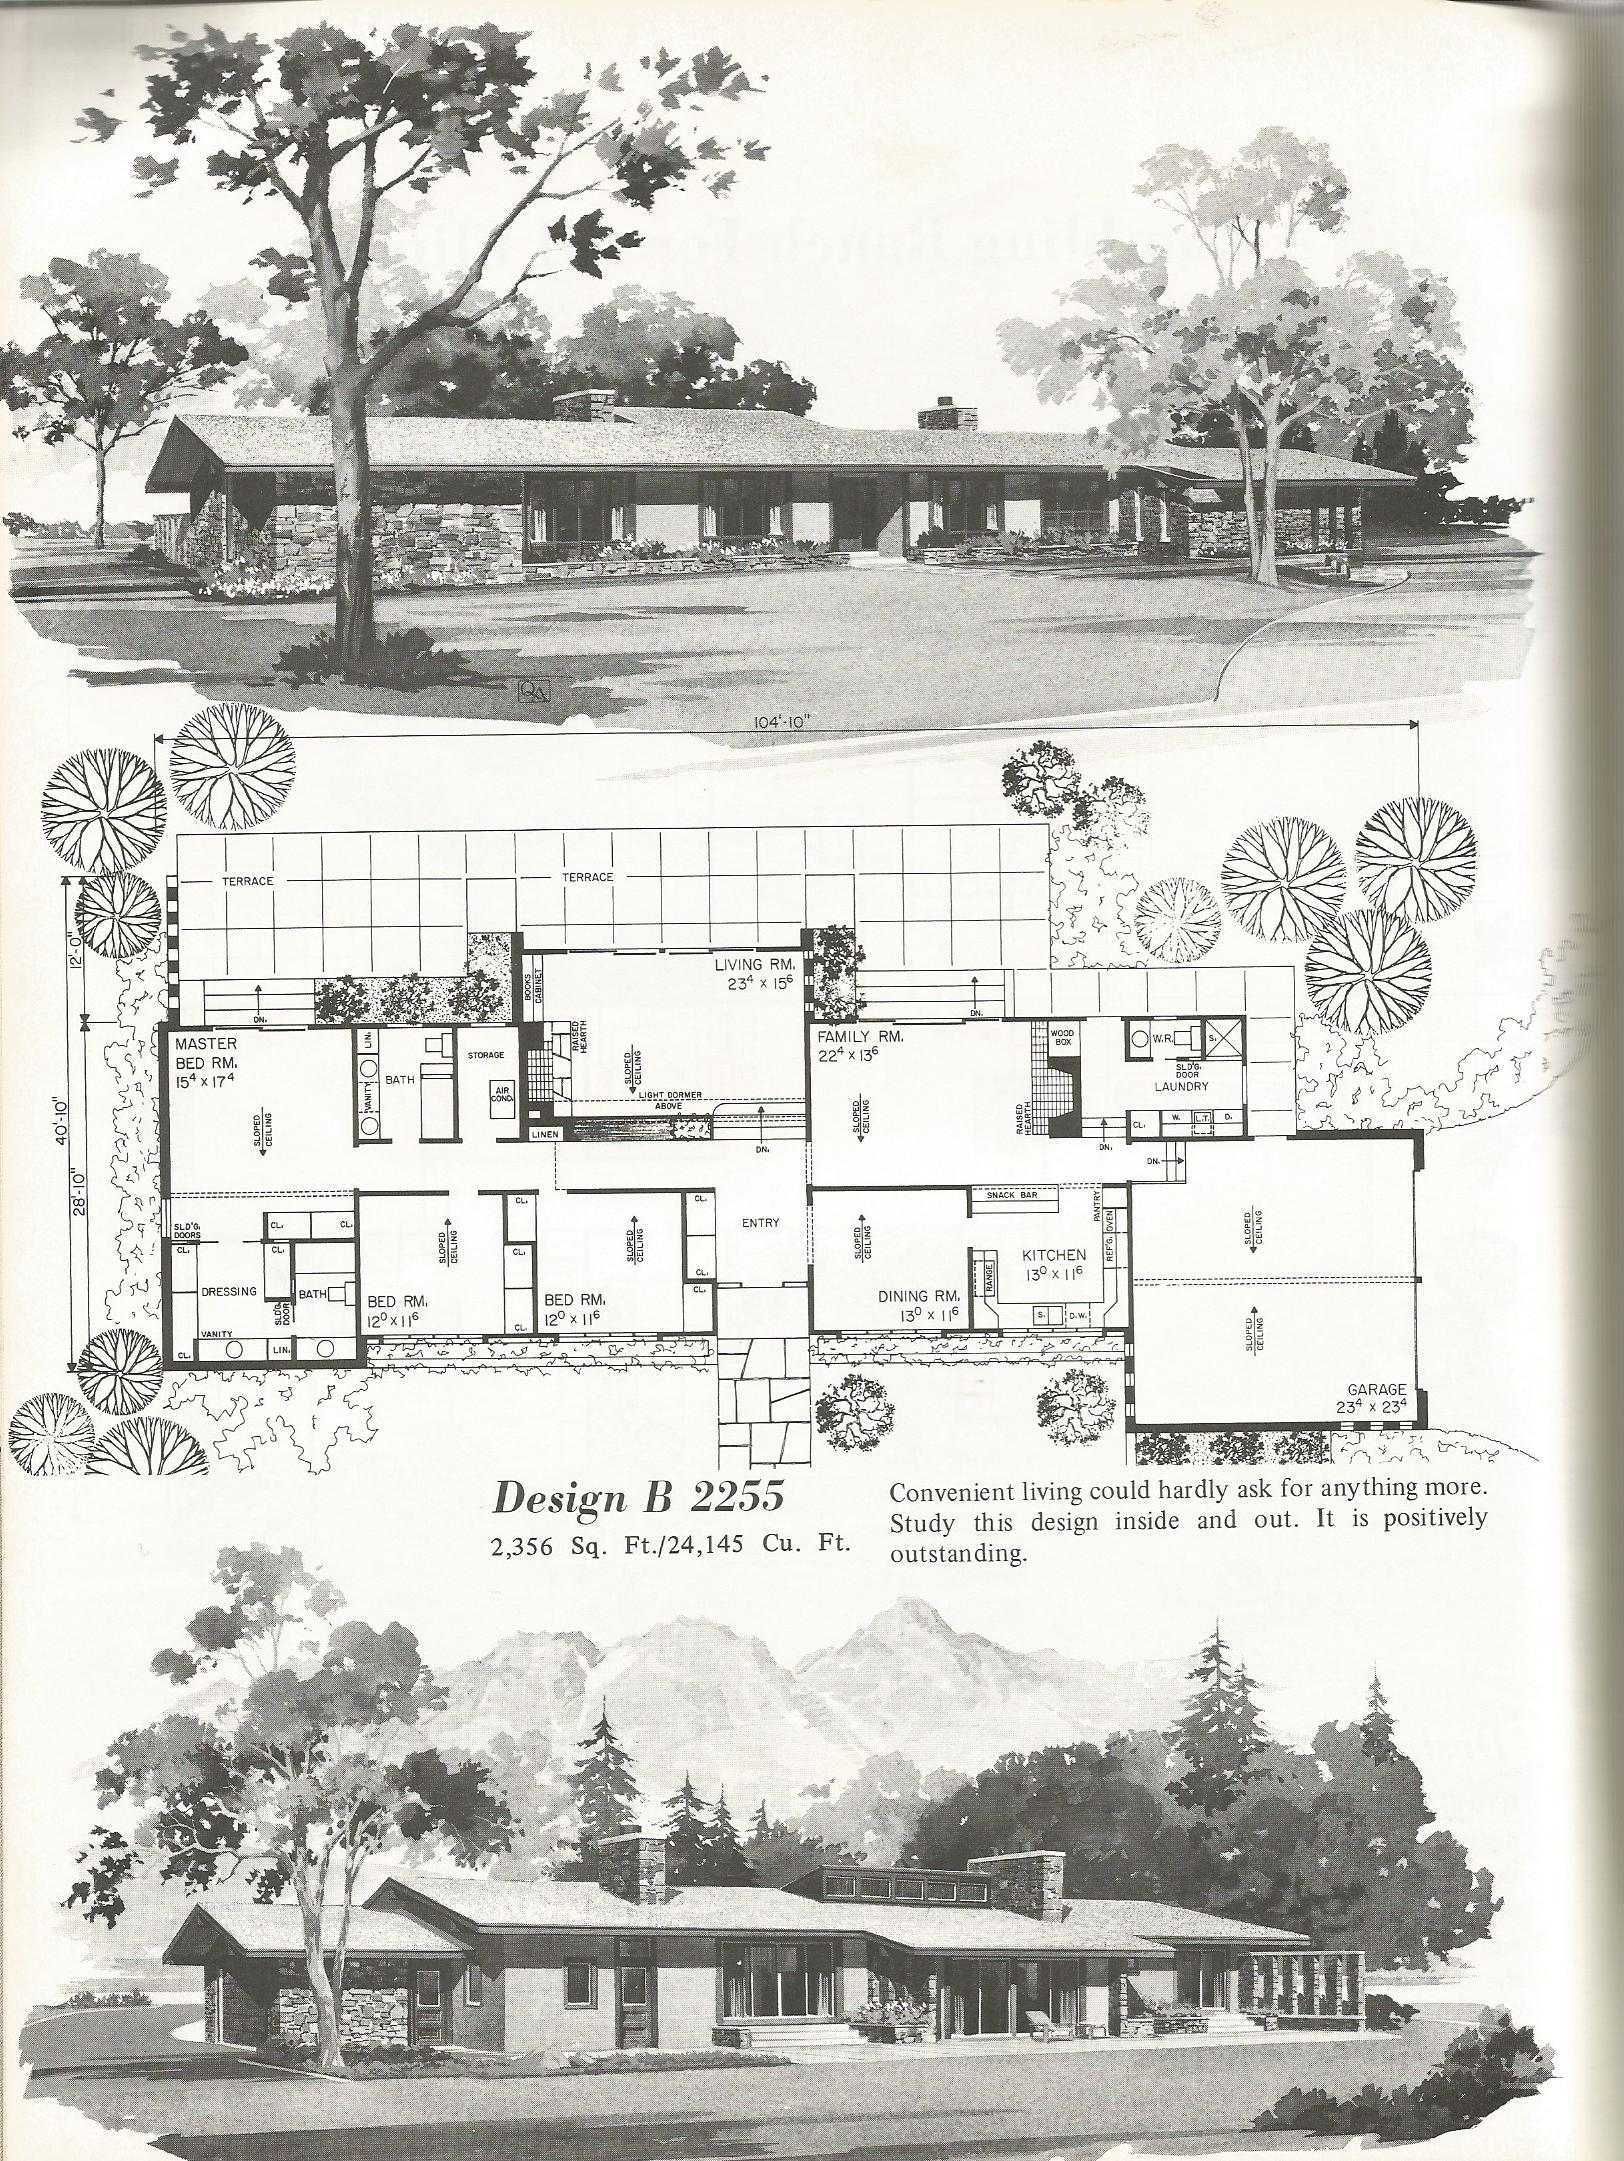 Vintage house plans 2255 antique alter ego for Palatial home designs